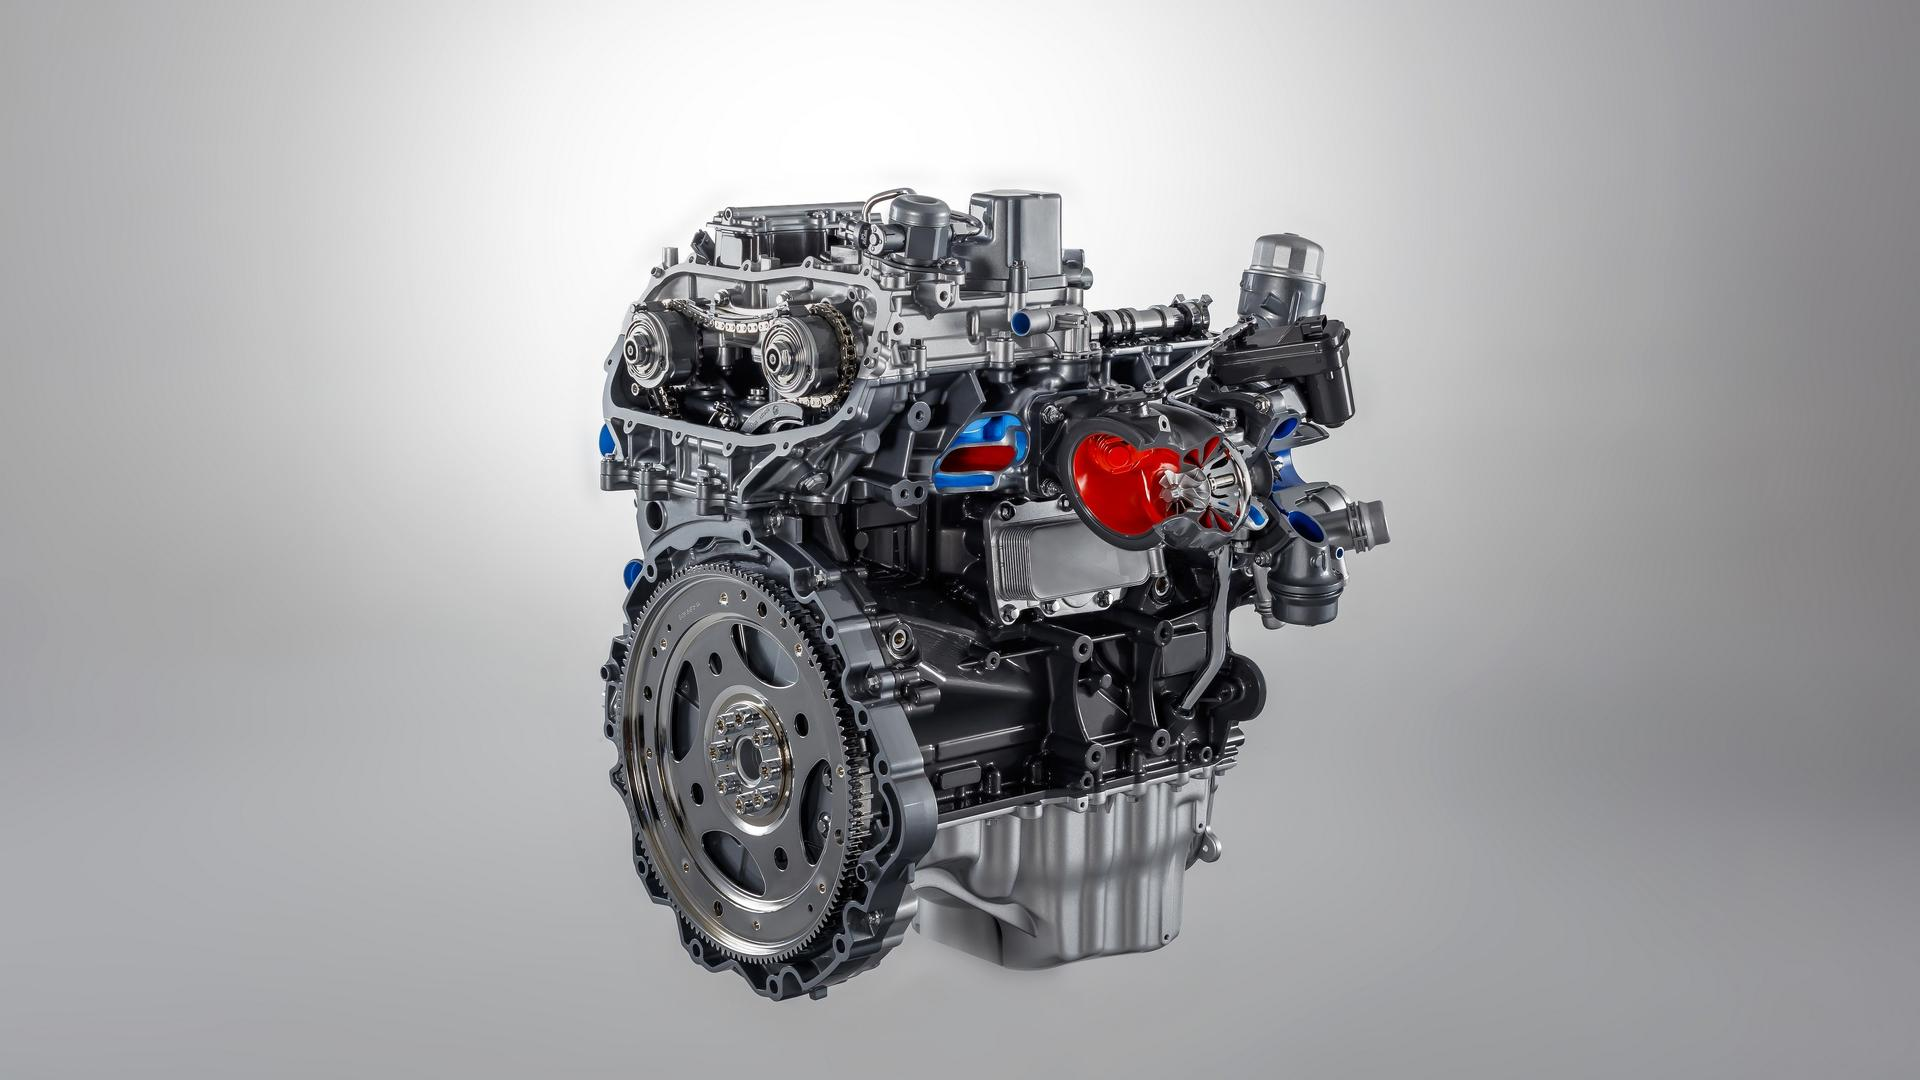 engines rating and trend motor engine reviews xj series cars jaguar